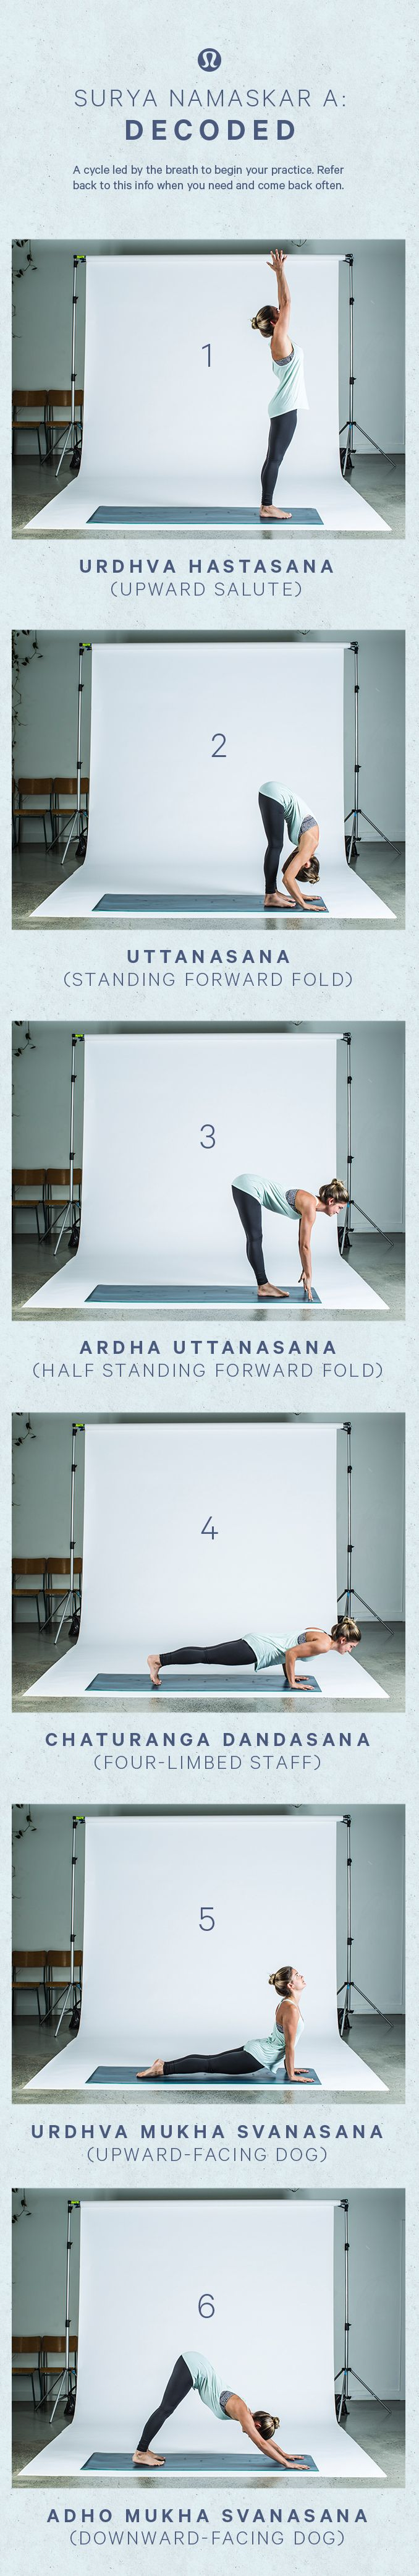 Surya Namaskar A decoded: a cycle led by the breath to begin your yoga practice. Refer back to this info when you need and come back often.